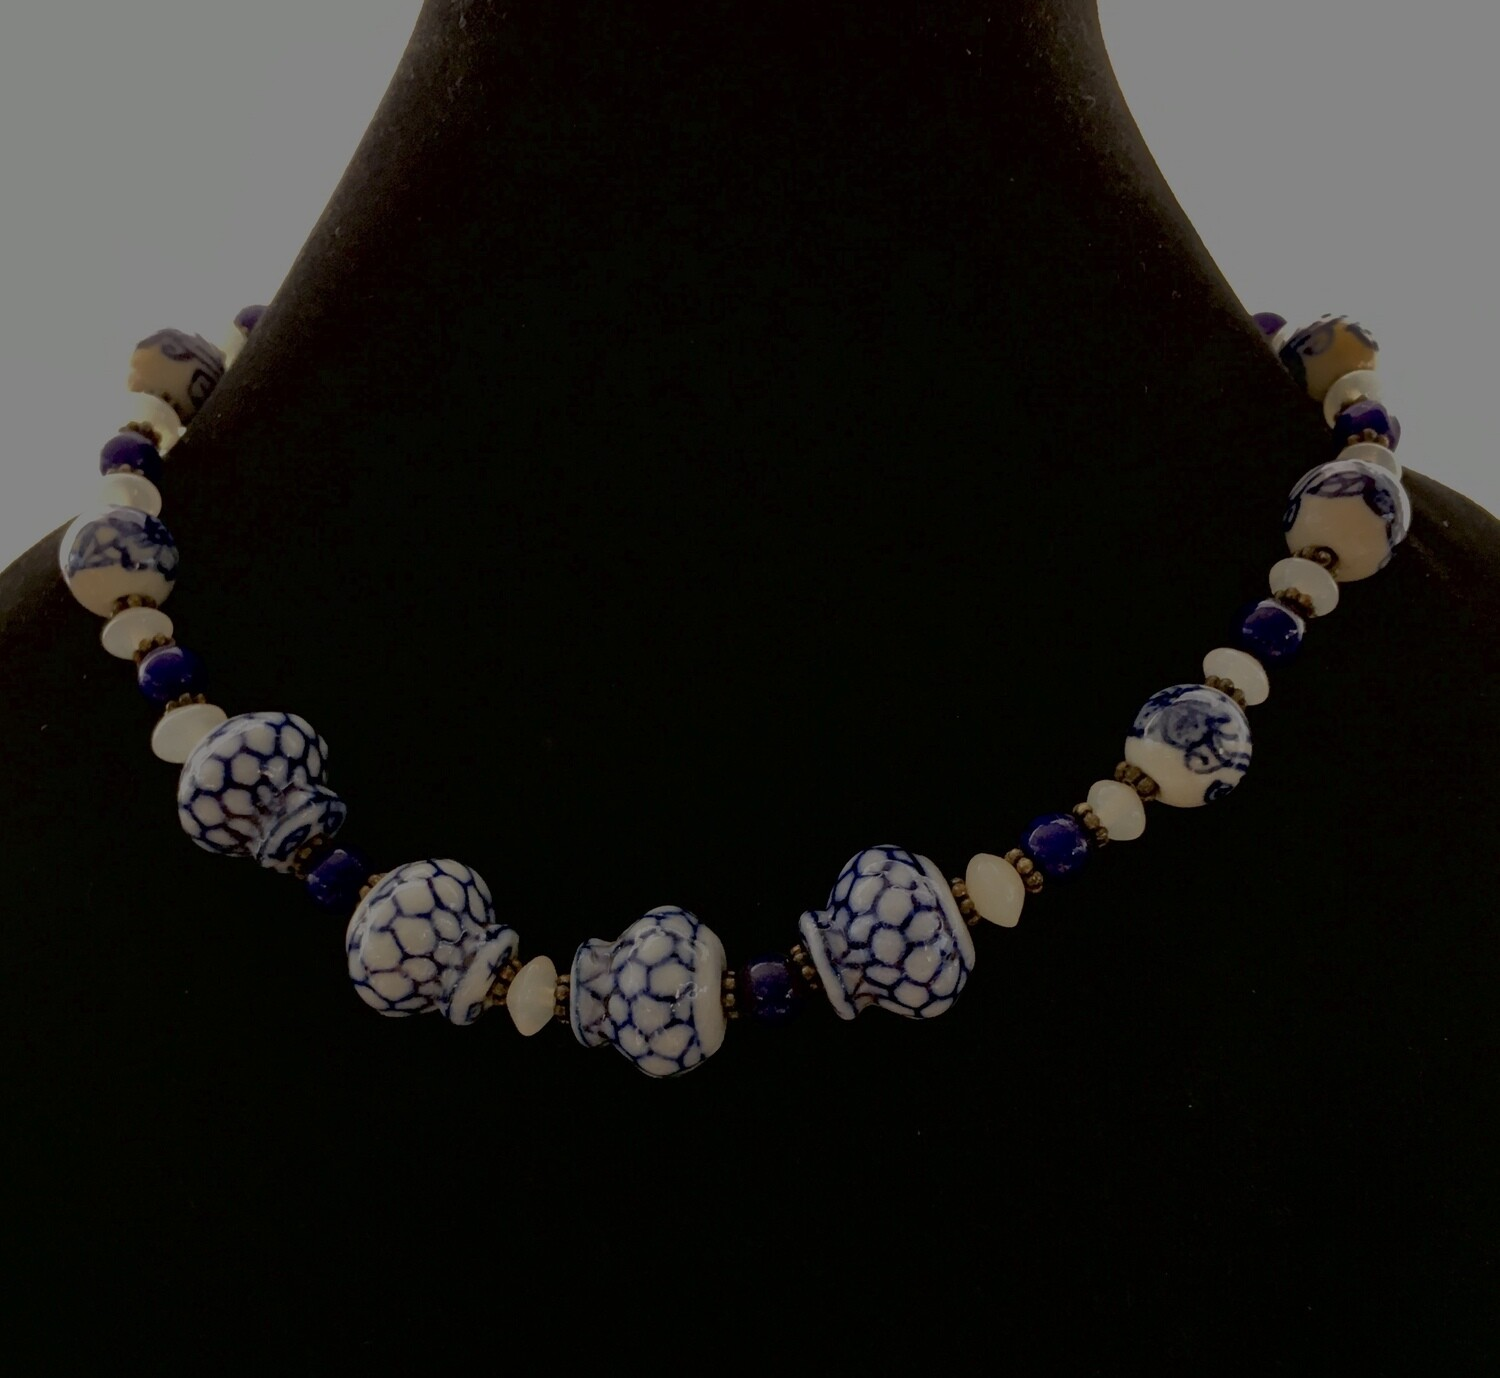 Ultramarine blue delft styled necklace